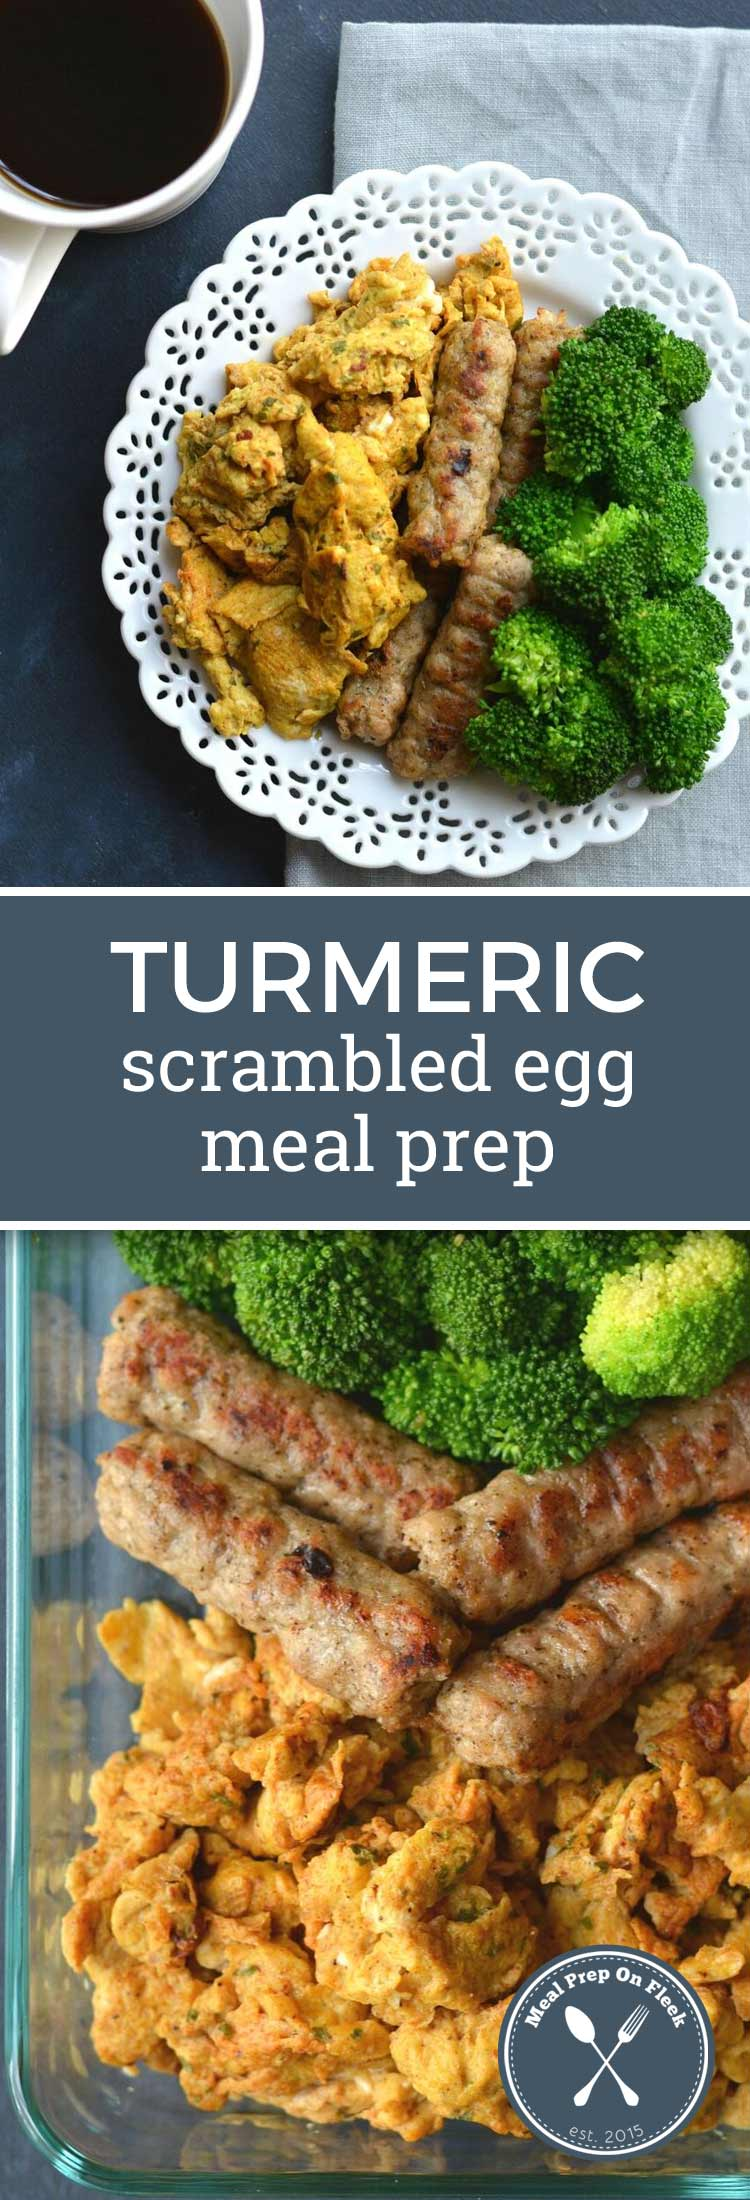 turmeric eggs, broccoli, and sausage